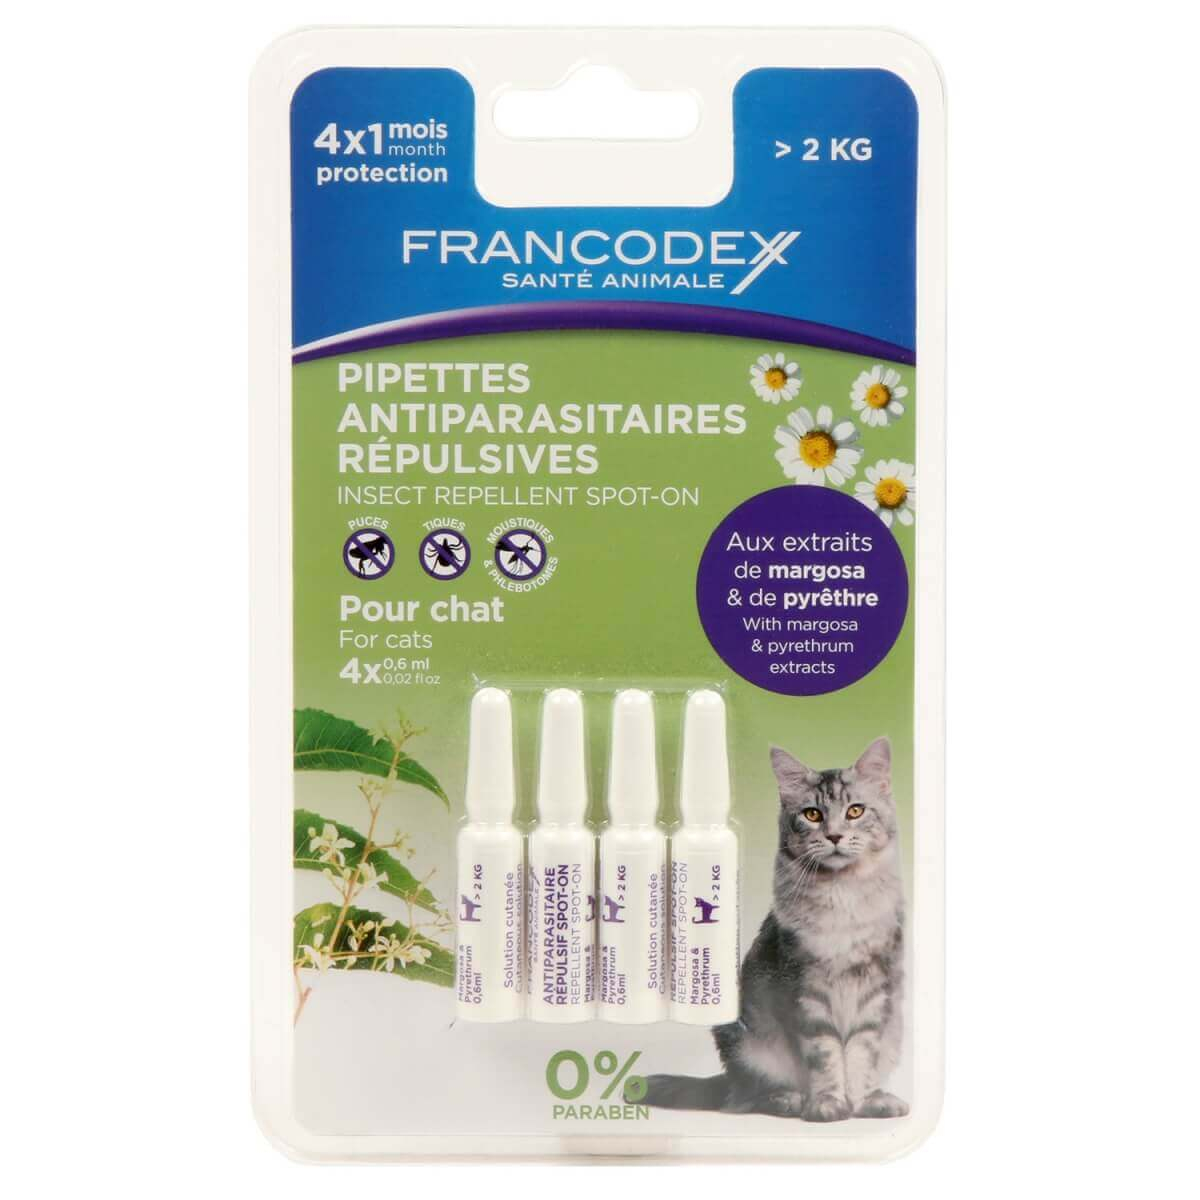 Pipettes antiparasitaires insectifuges pour chat_2